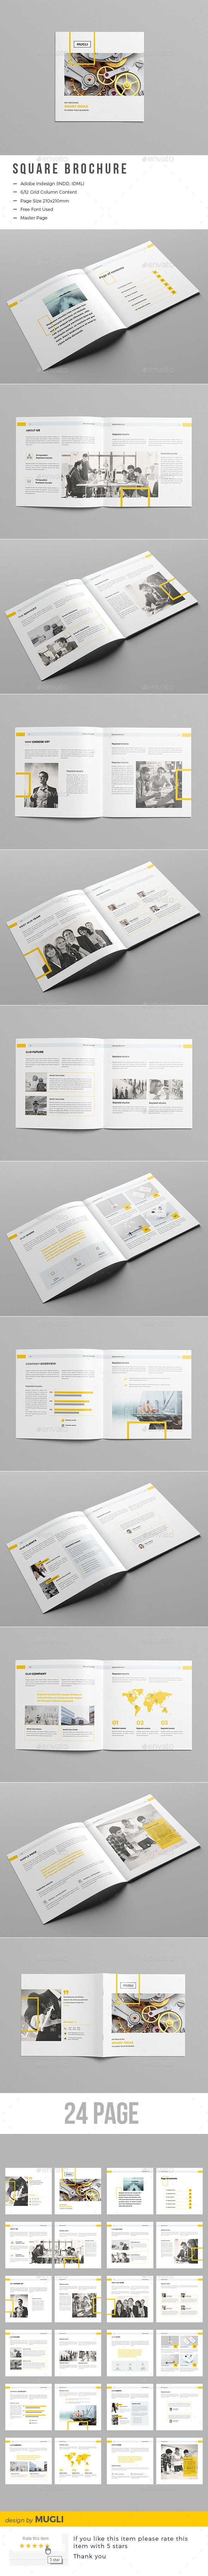 The Square Brochure — InDesign Template #manual #marketing ...